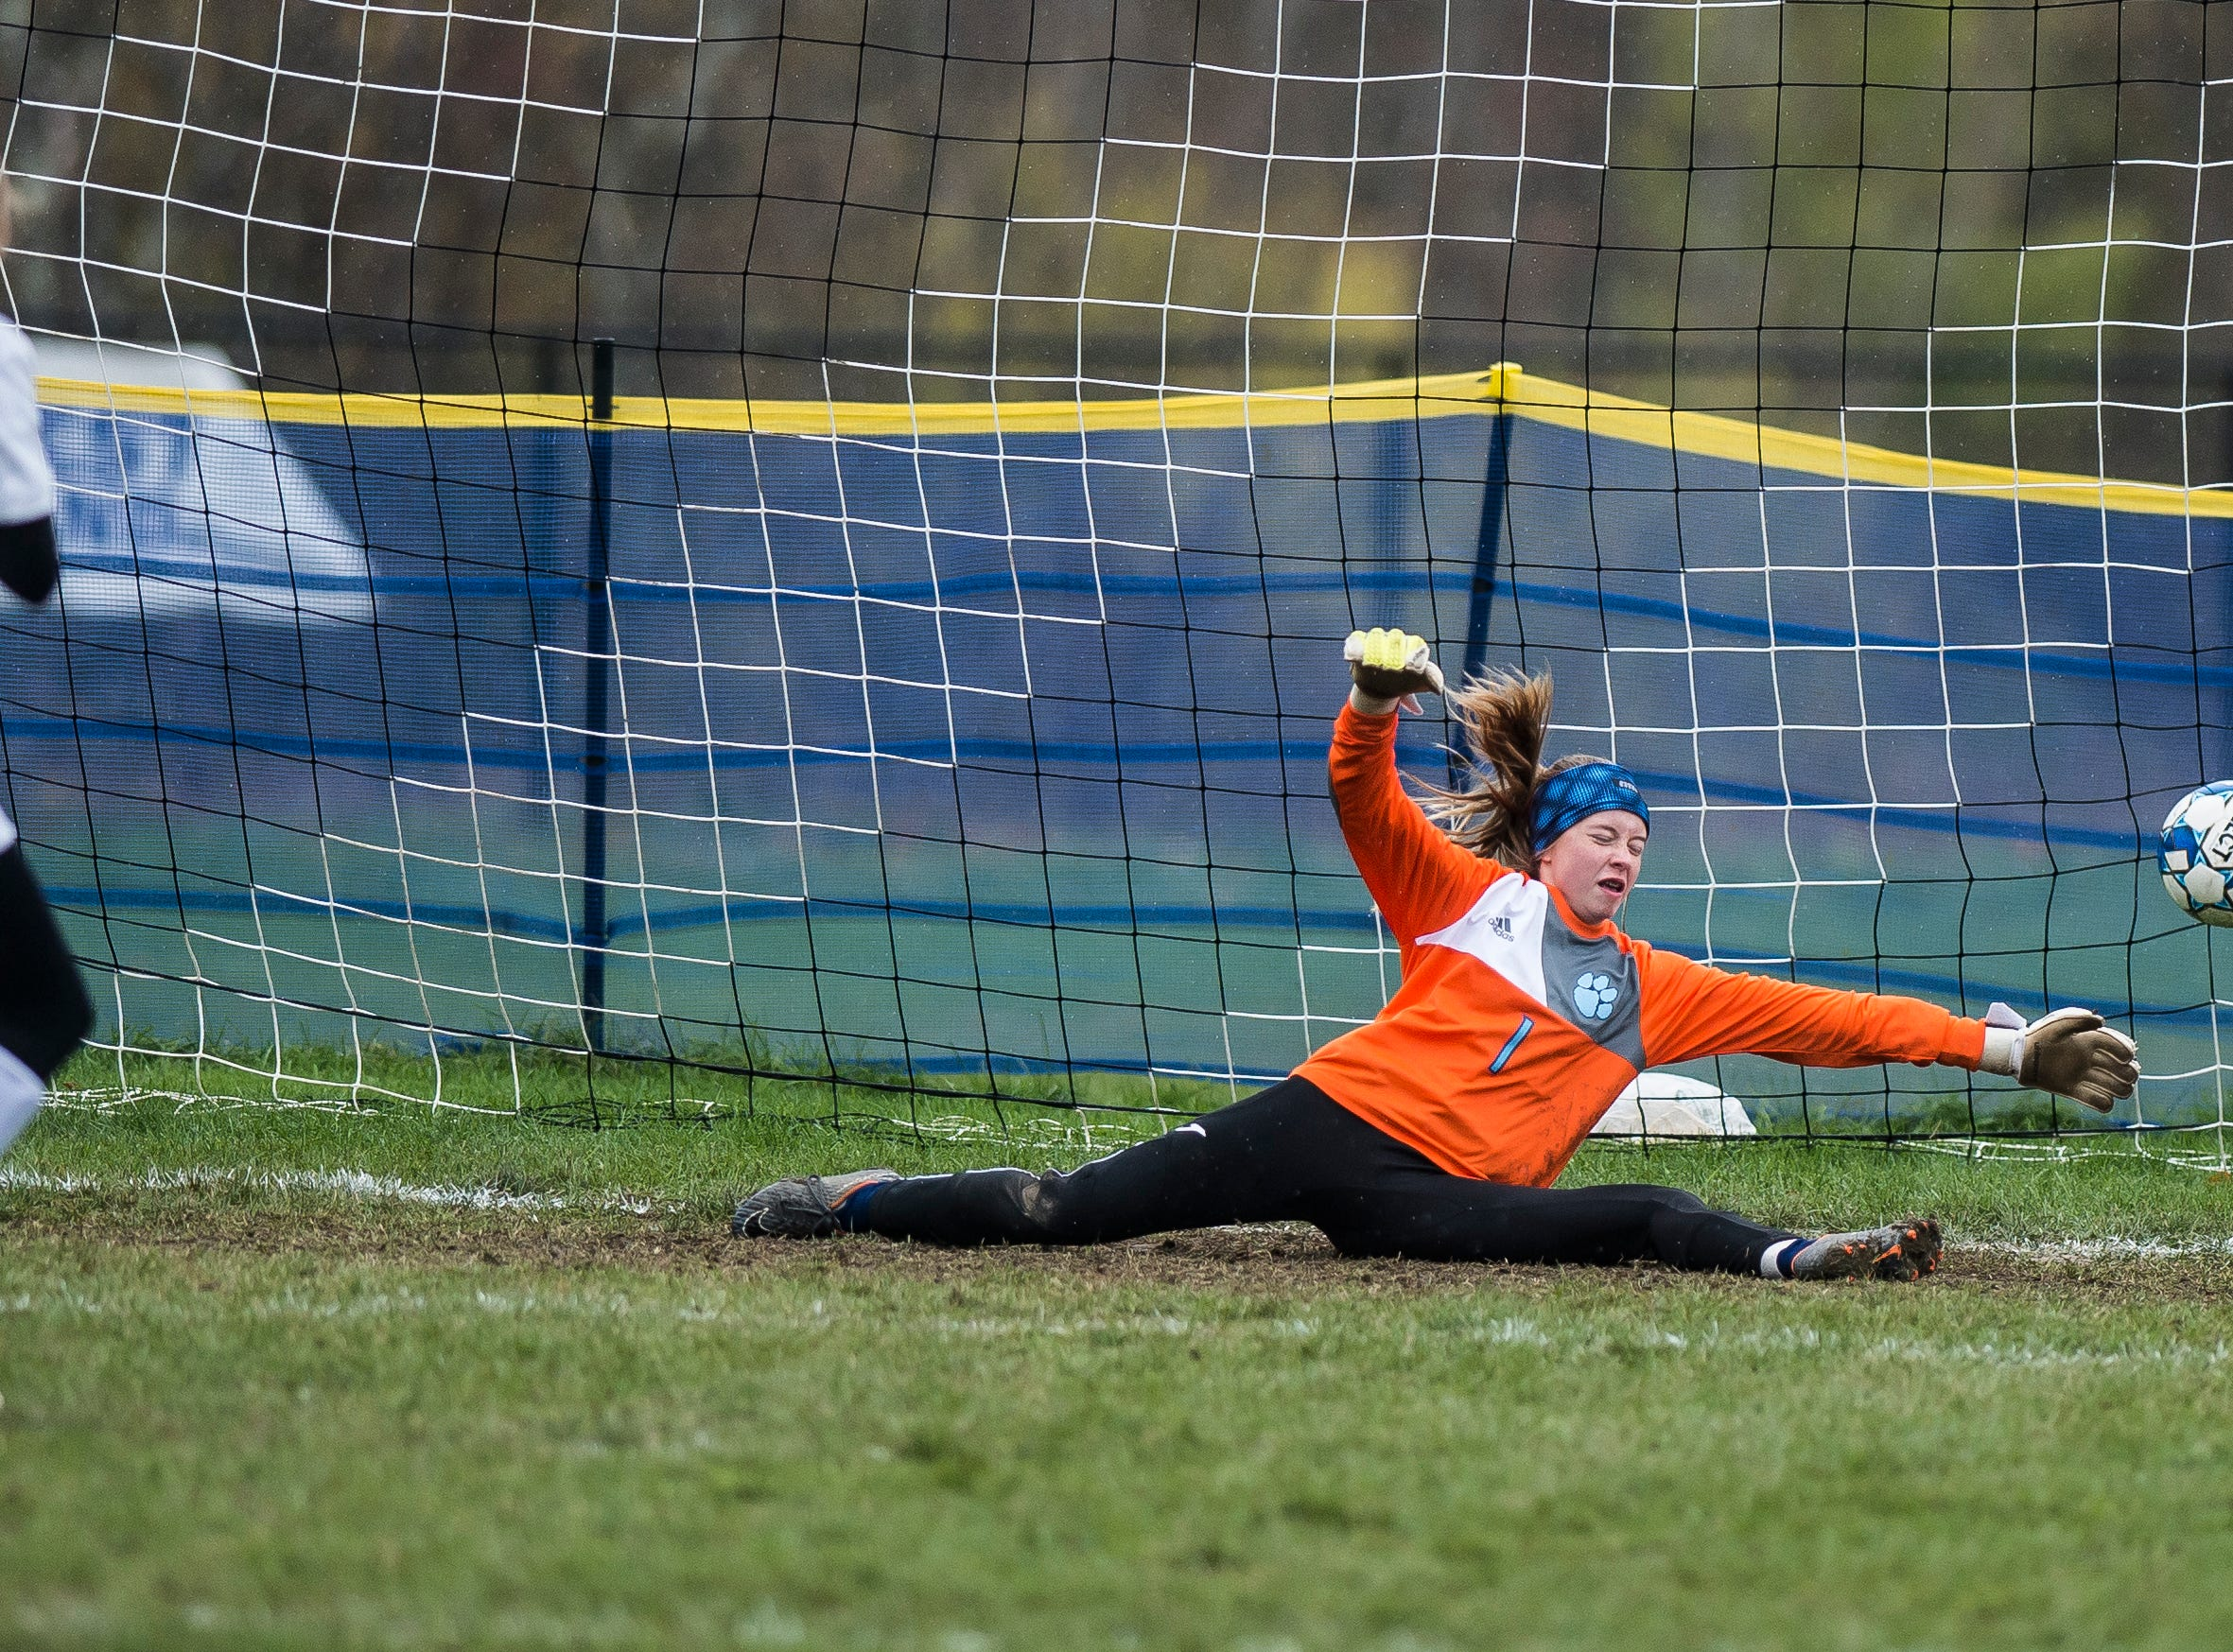 Essex #5 Natalie McMahon gets a fourth penalty kick past MMU goalie Anna Betz during their quarter-final game in Jericho on Saturday, Oct. 27, 2018, that went into double overtime and shootout. Essex took the penalty kick contest to win, 4-1.